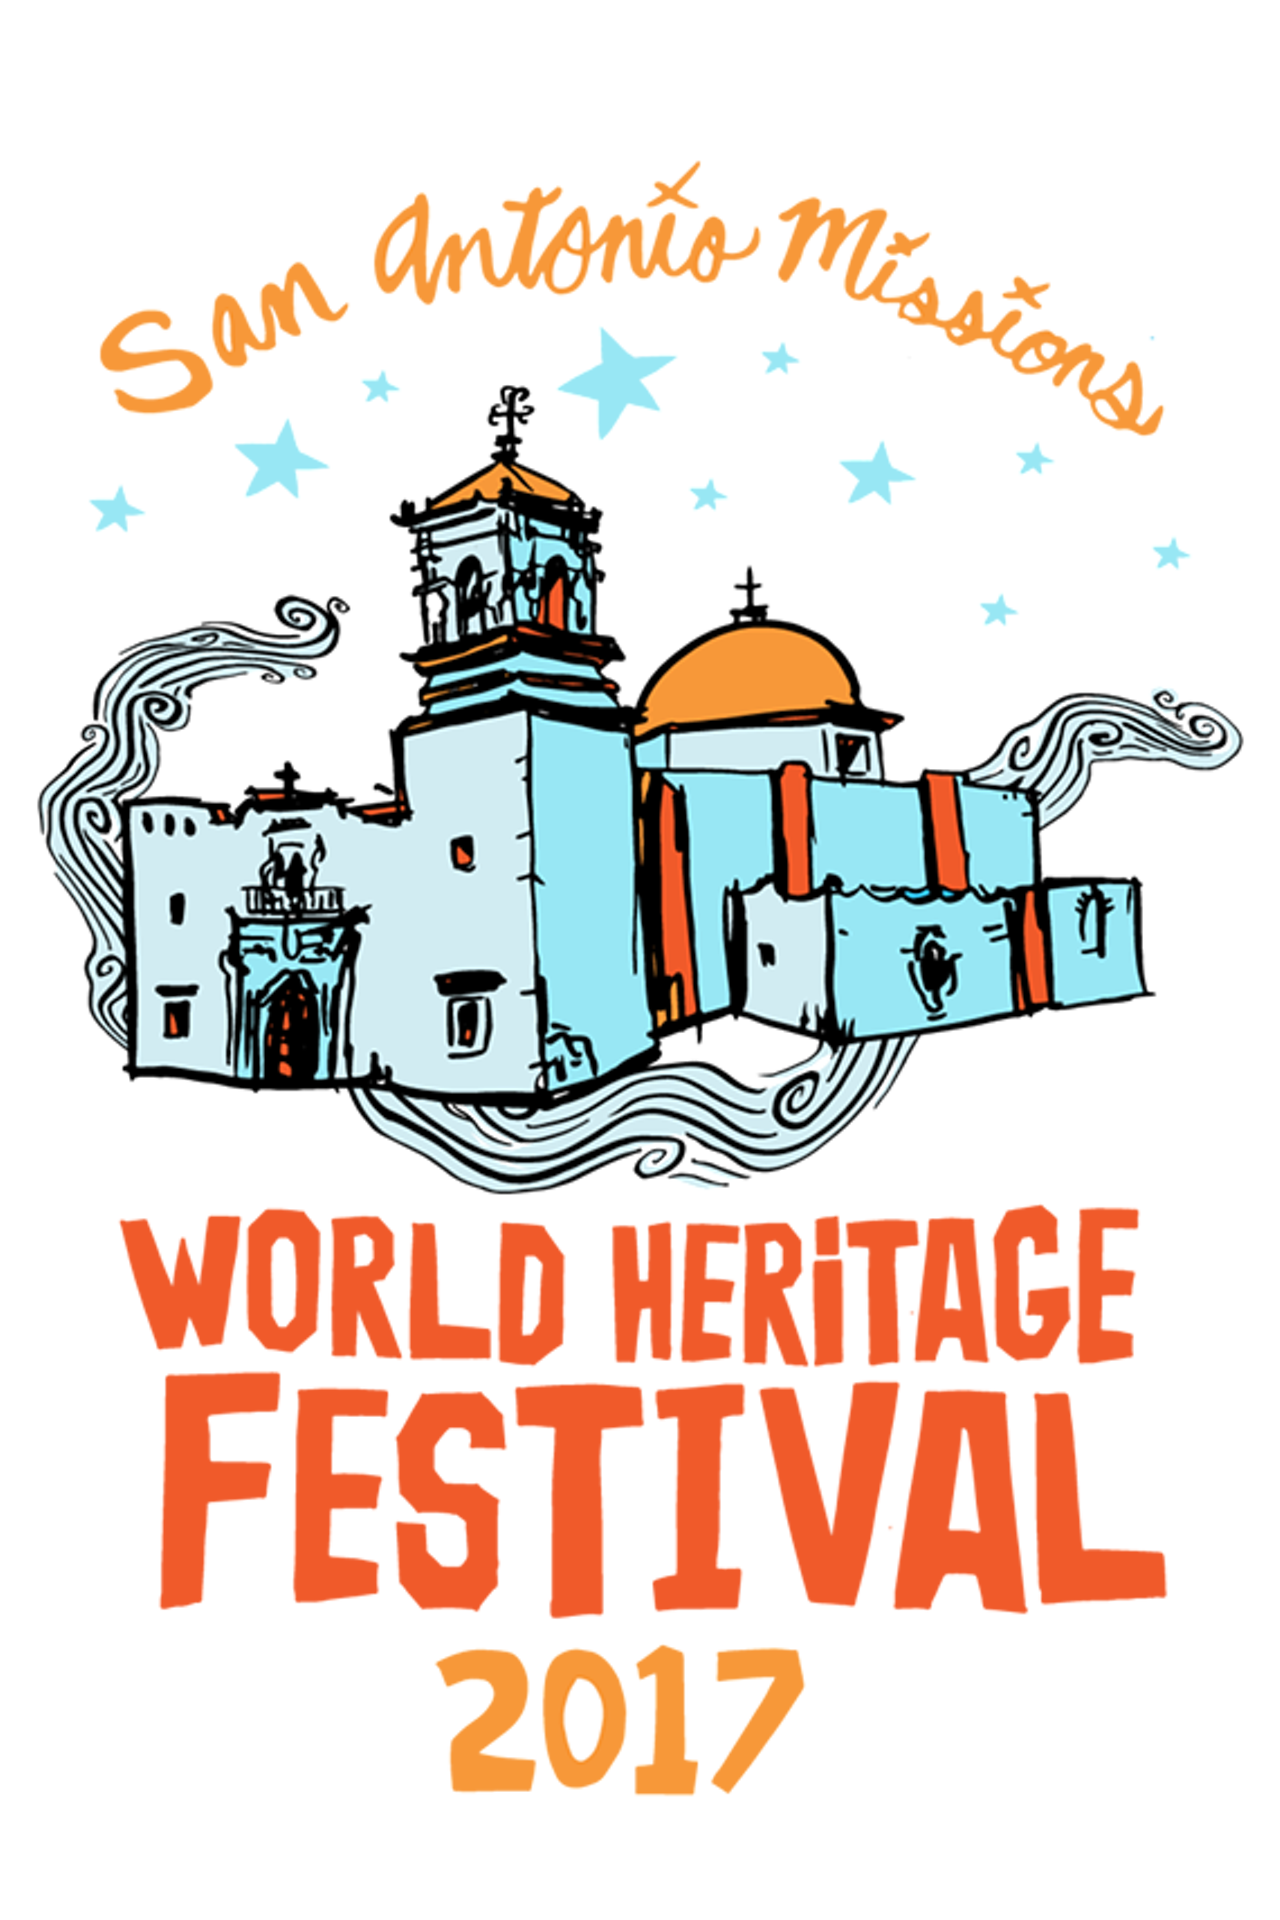 Missions clipart business mission. World heritage festival brings